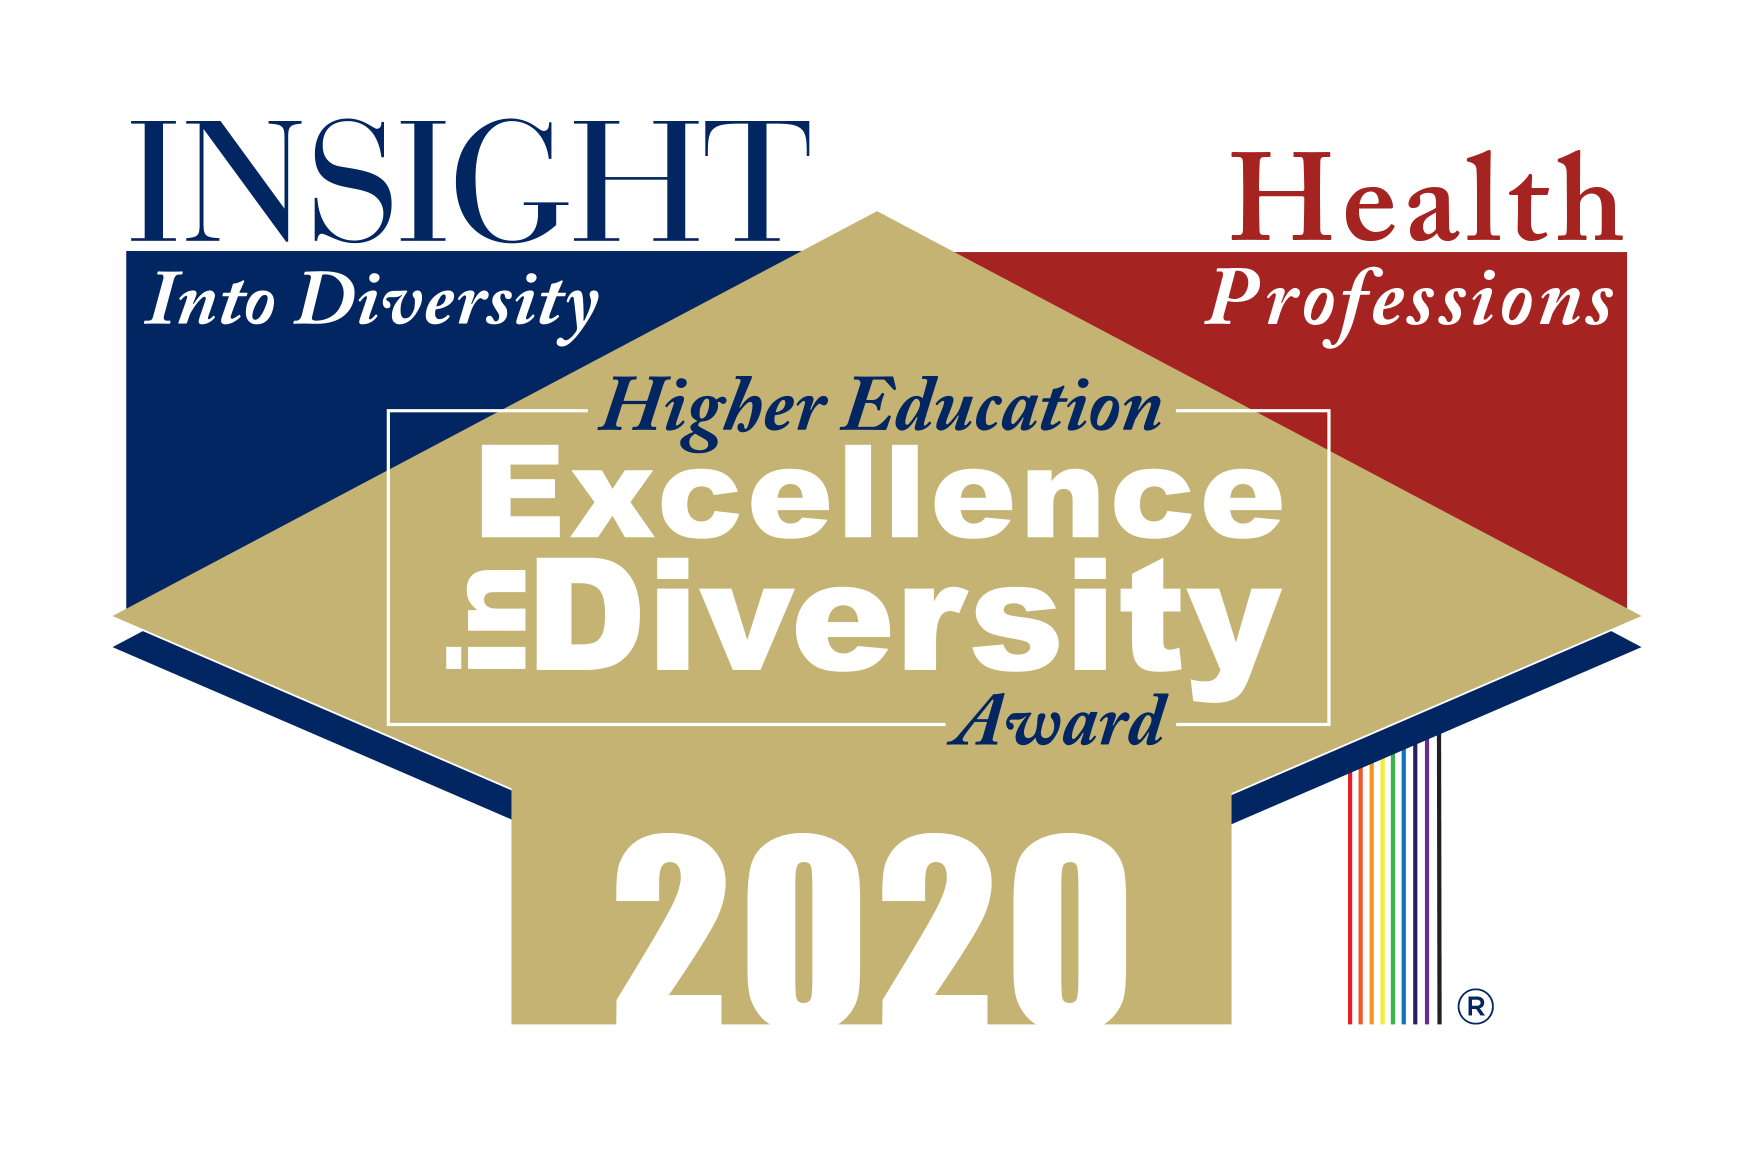 Insight Into Diversity 2020 Health Professions Higher Education Excellence in Diversity (HEED) Award logo